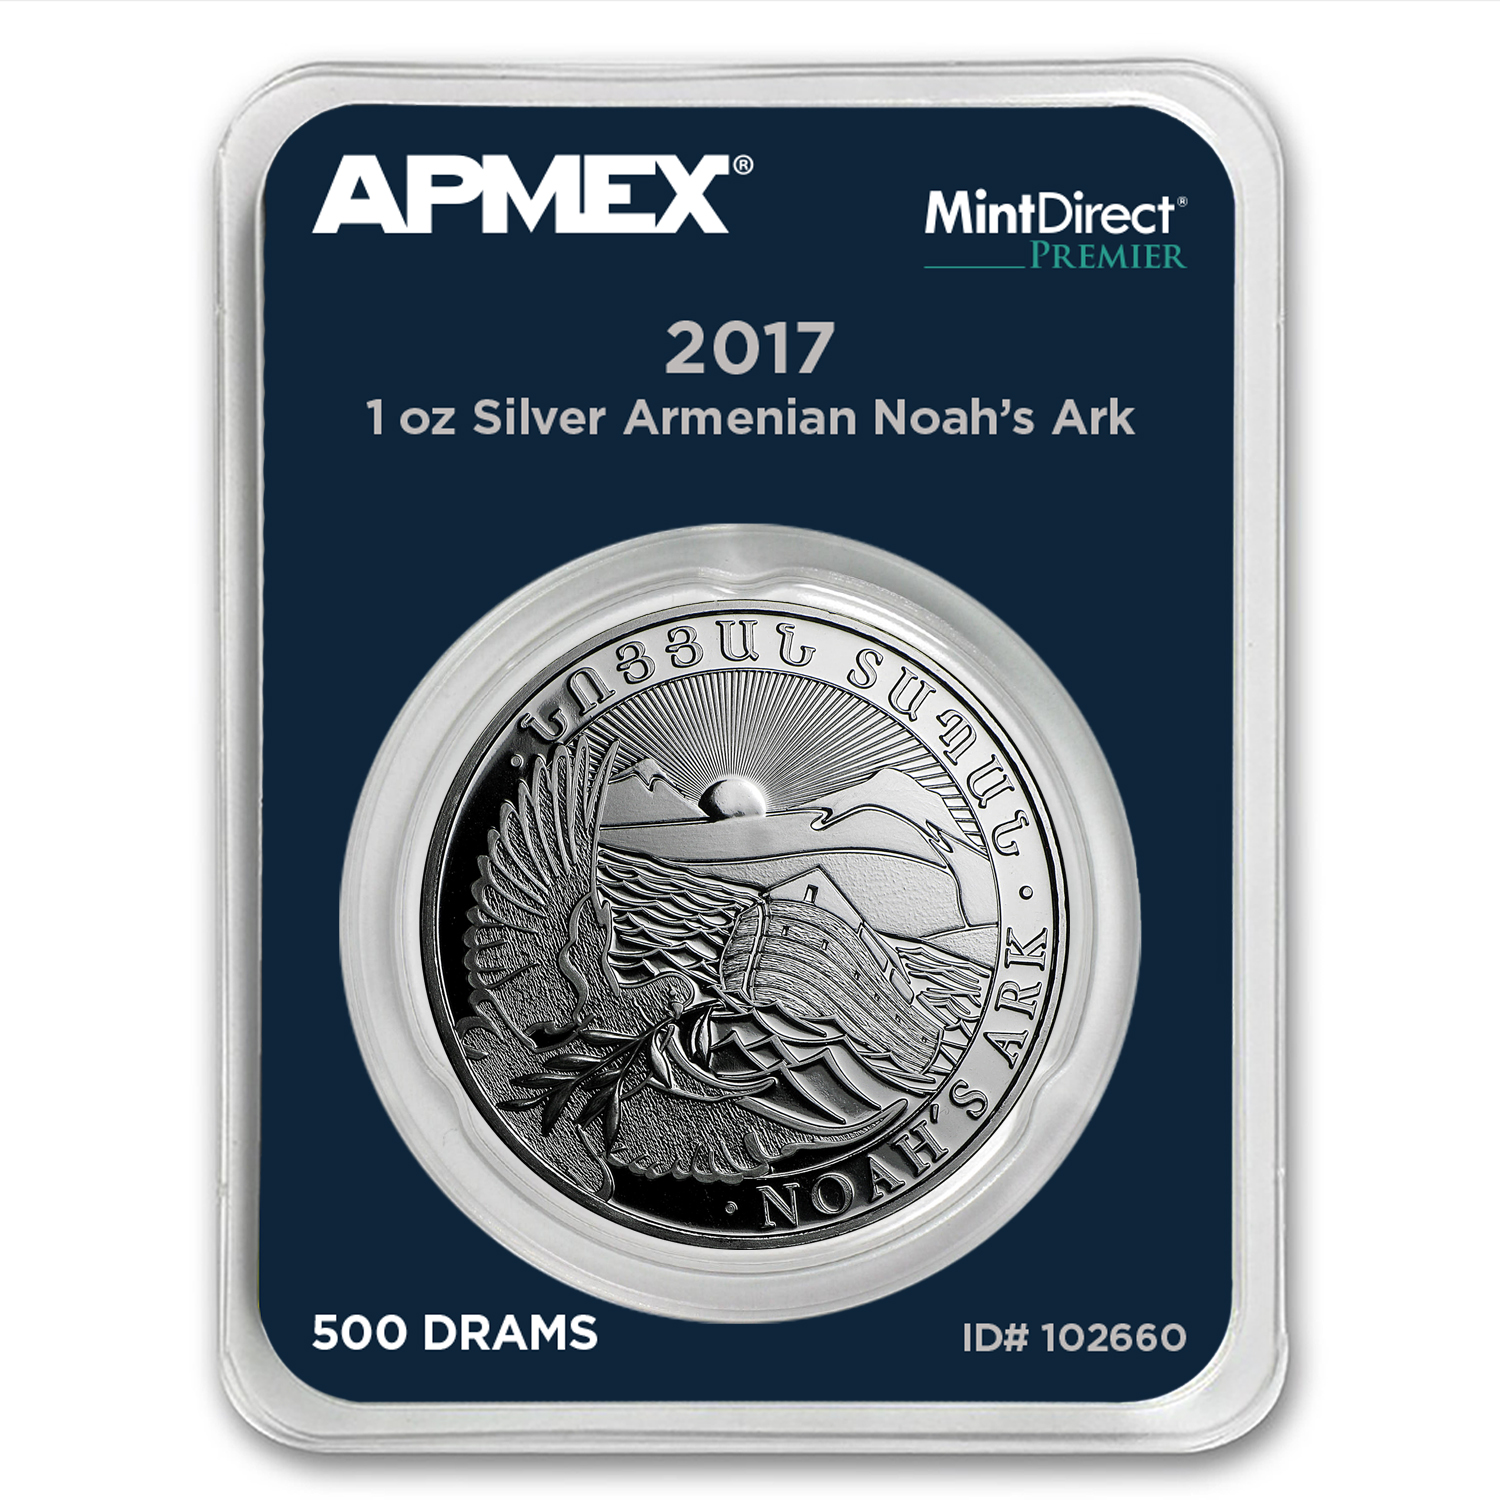 2017 Armenia 1 oz Silver Noah's Ark (MintDirect® Premier Single)